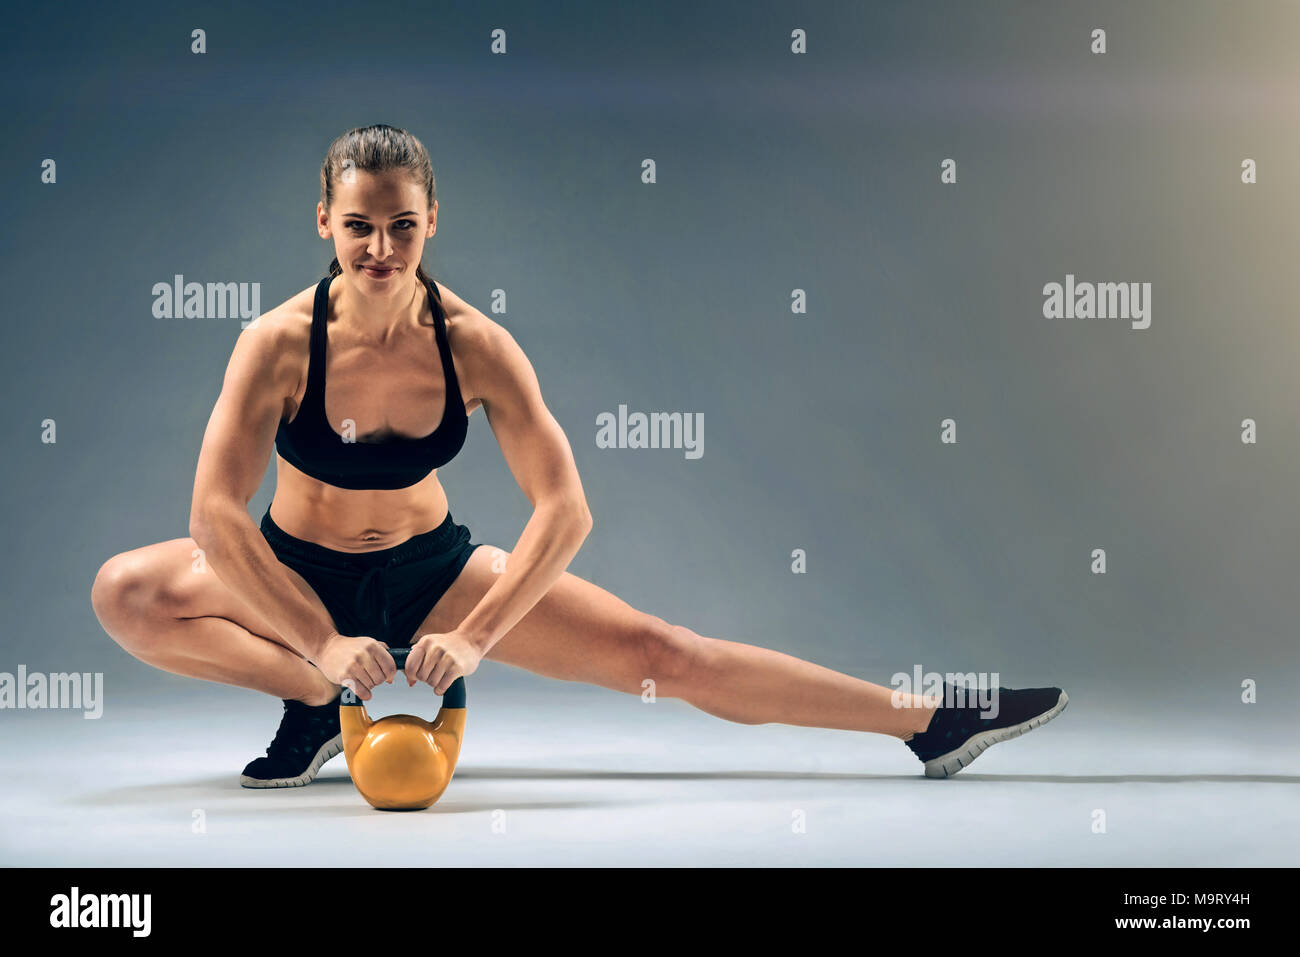 Friendly looking muscular girl posing with kettlebell - Stock Image